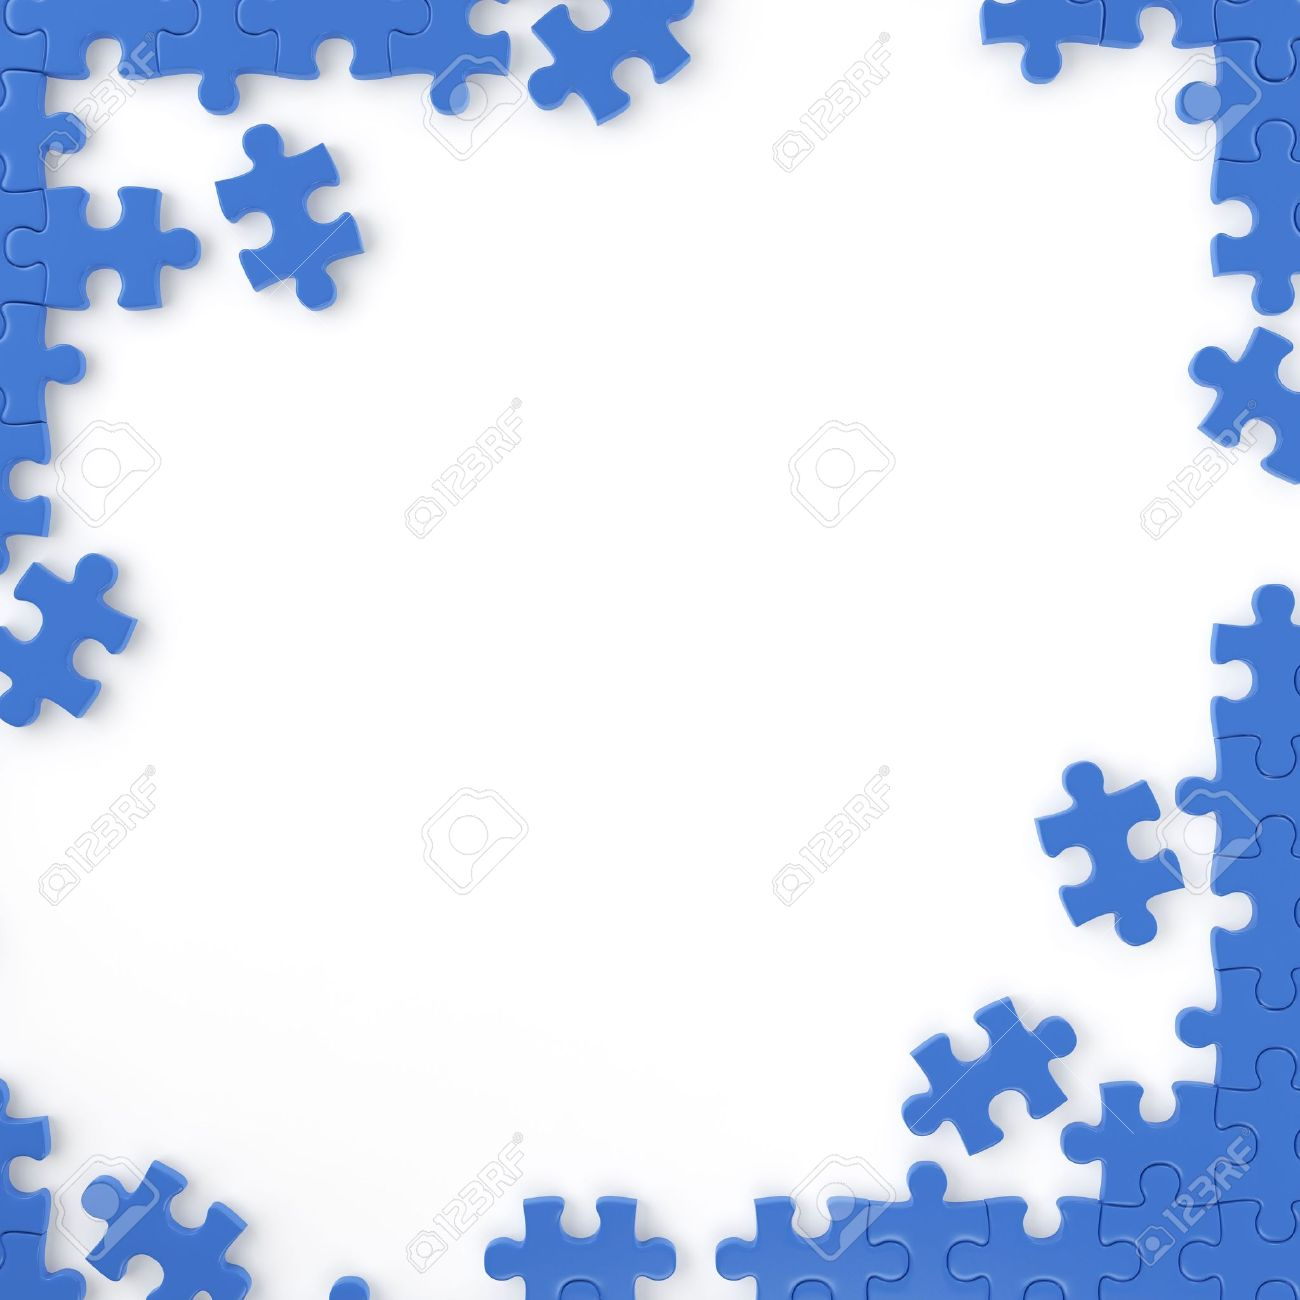 puzzle pieces forming a frame for your own text or design with